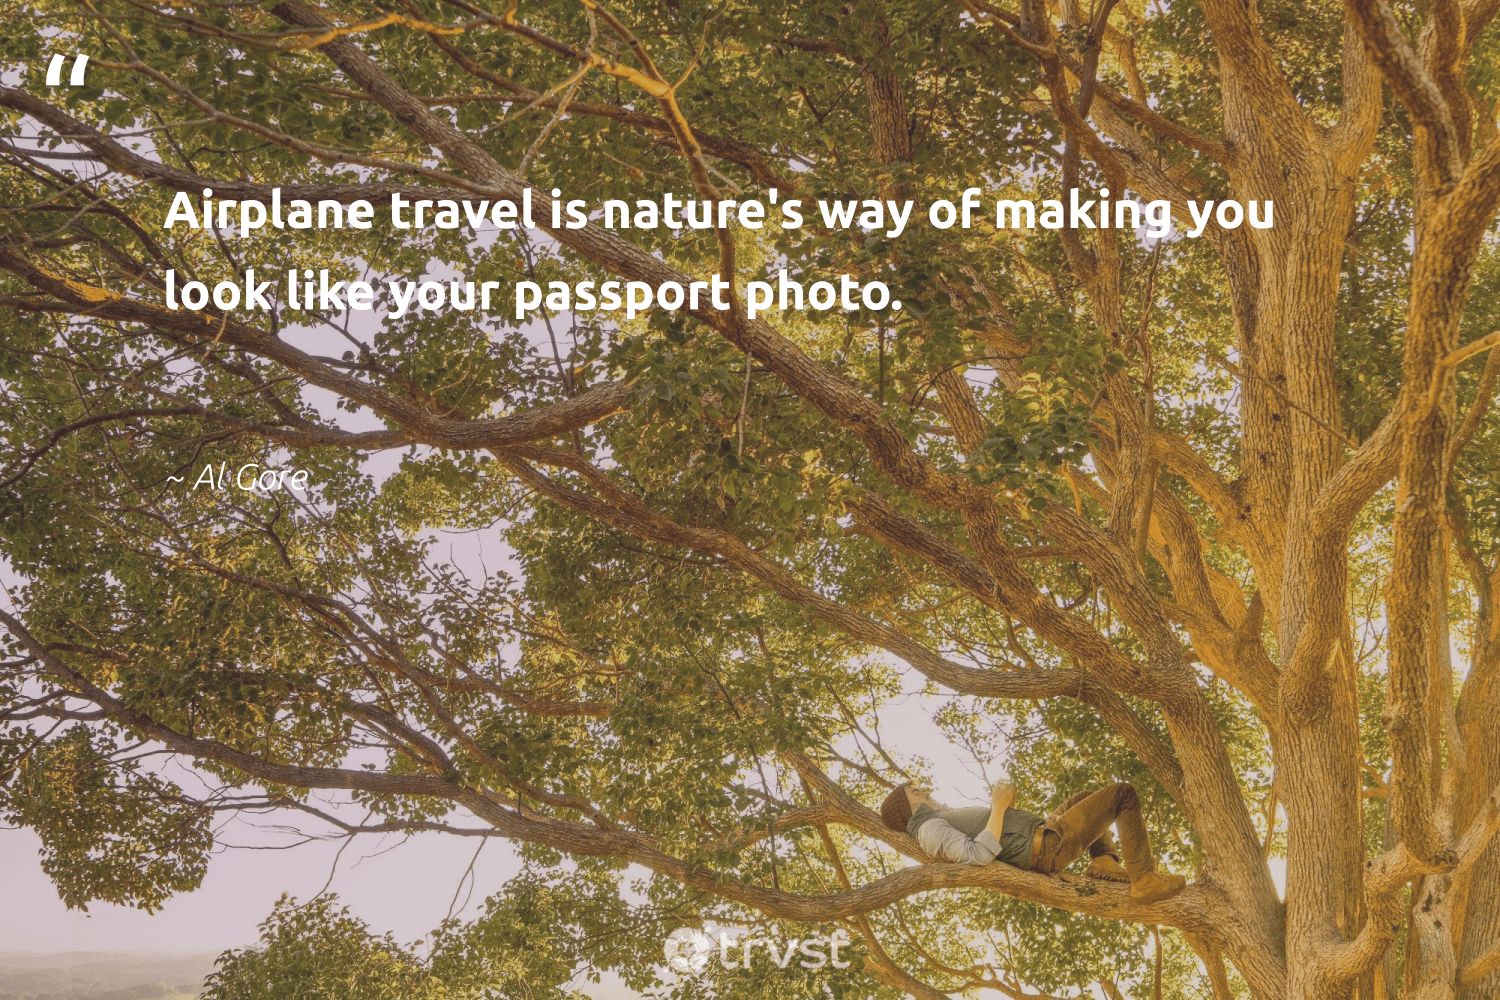 """""""Airplane travel is nature's way of making you look like your passport photo.""""  - Al Gore #trvst #quotes #travel #shellfish #sustainable #geology #thinkgreen #mollusc #giveback #cheetah #dotherightthing #nature"""